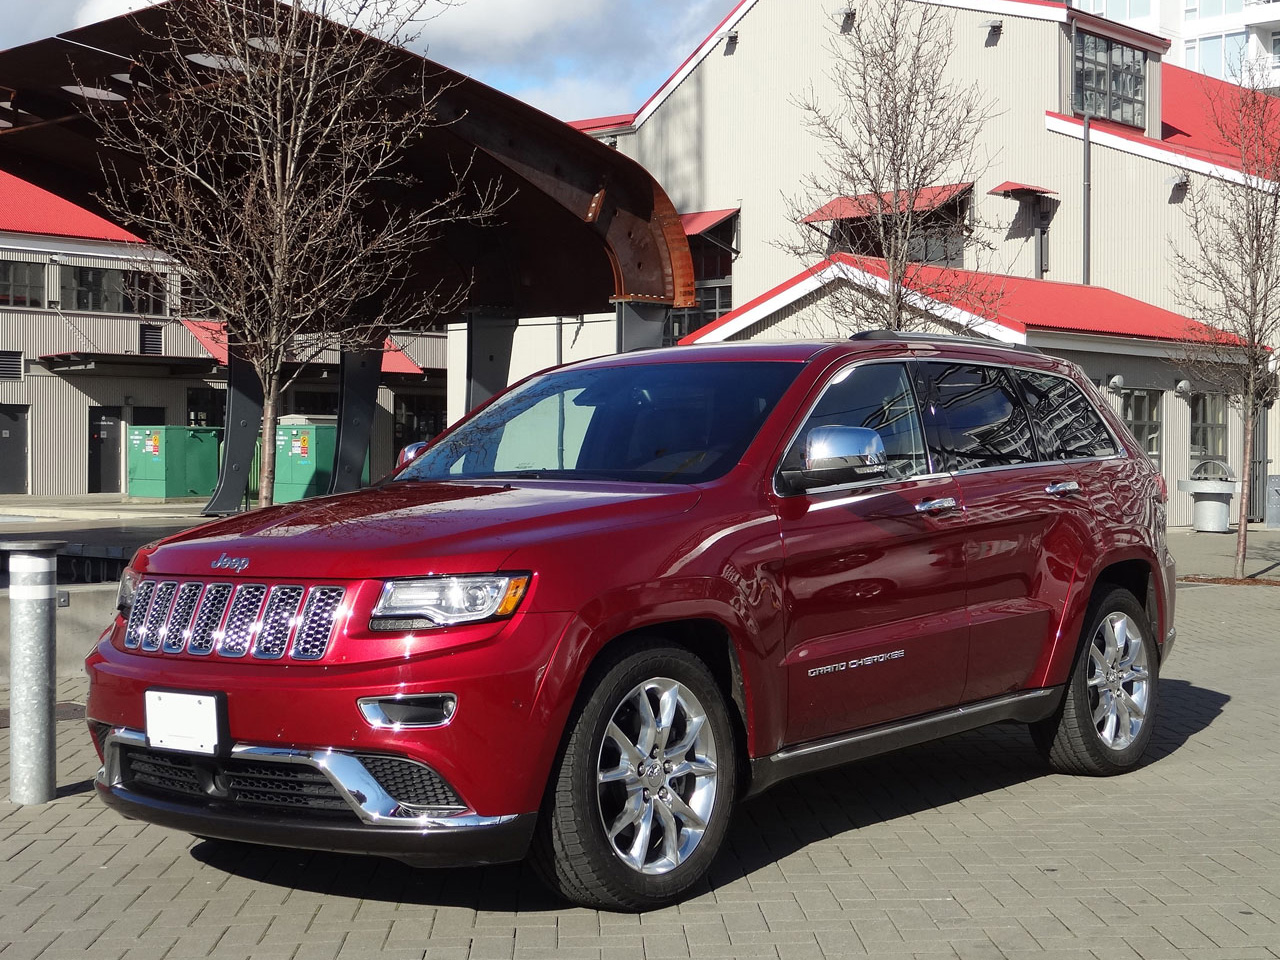 2014 jeep grand cherokee summit ecodiesel road test review carcostcanada. Black Bedroom Furniture Sets. Home Design Ideas